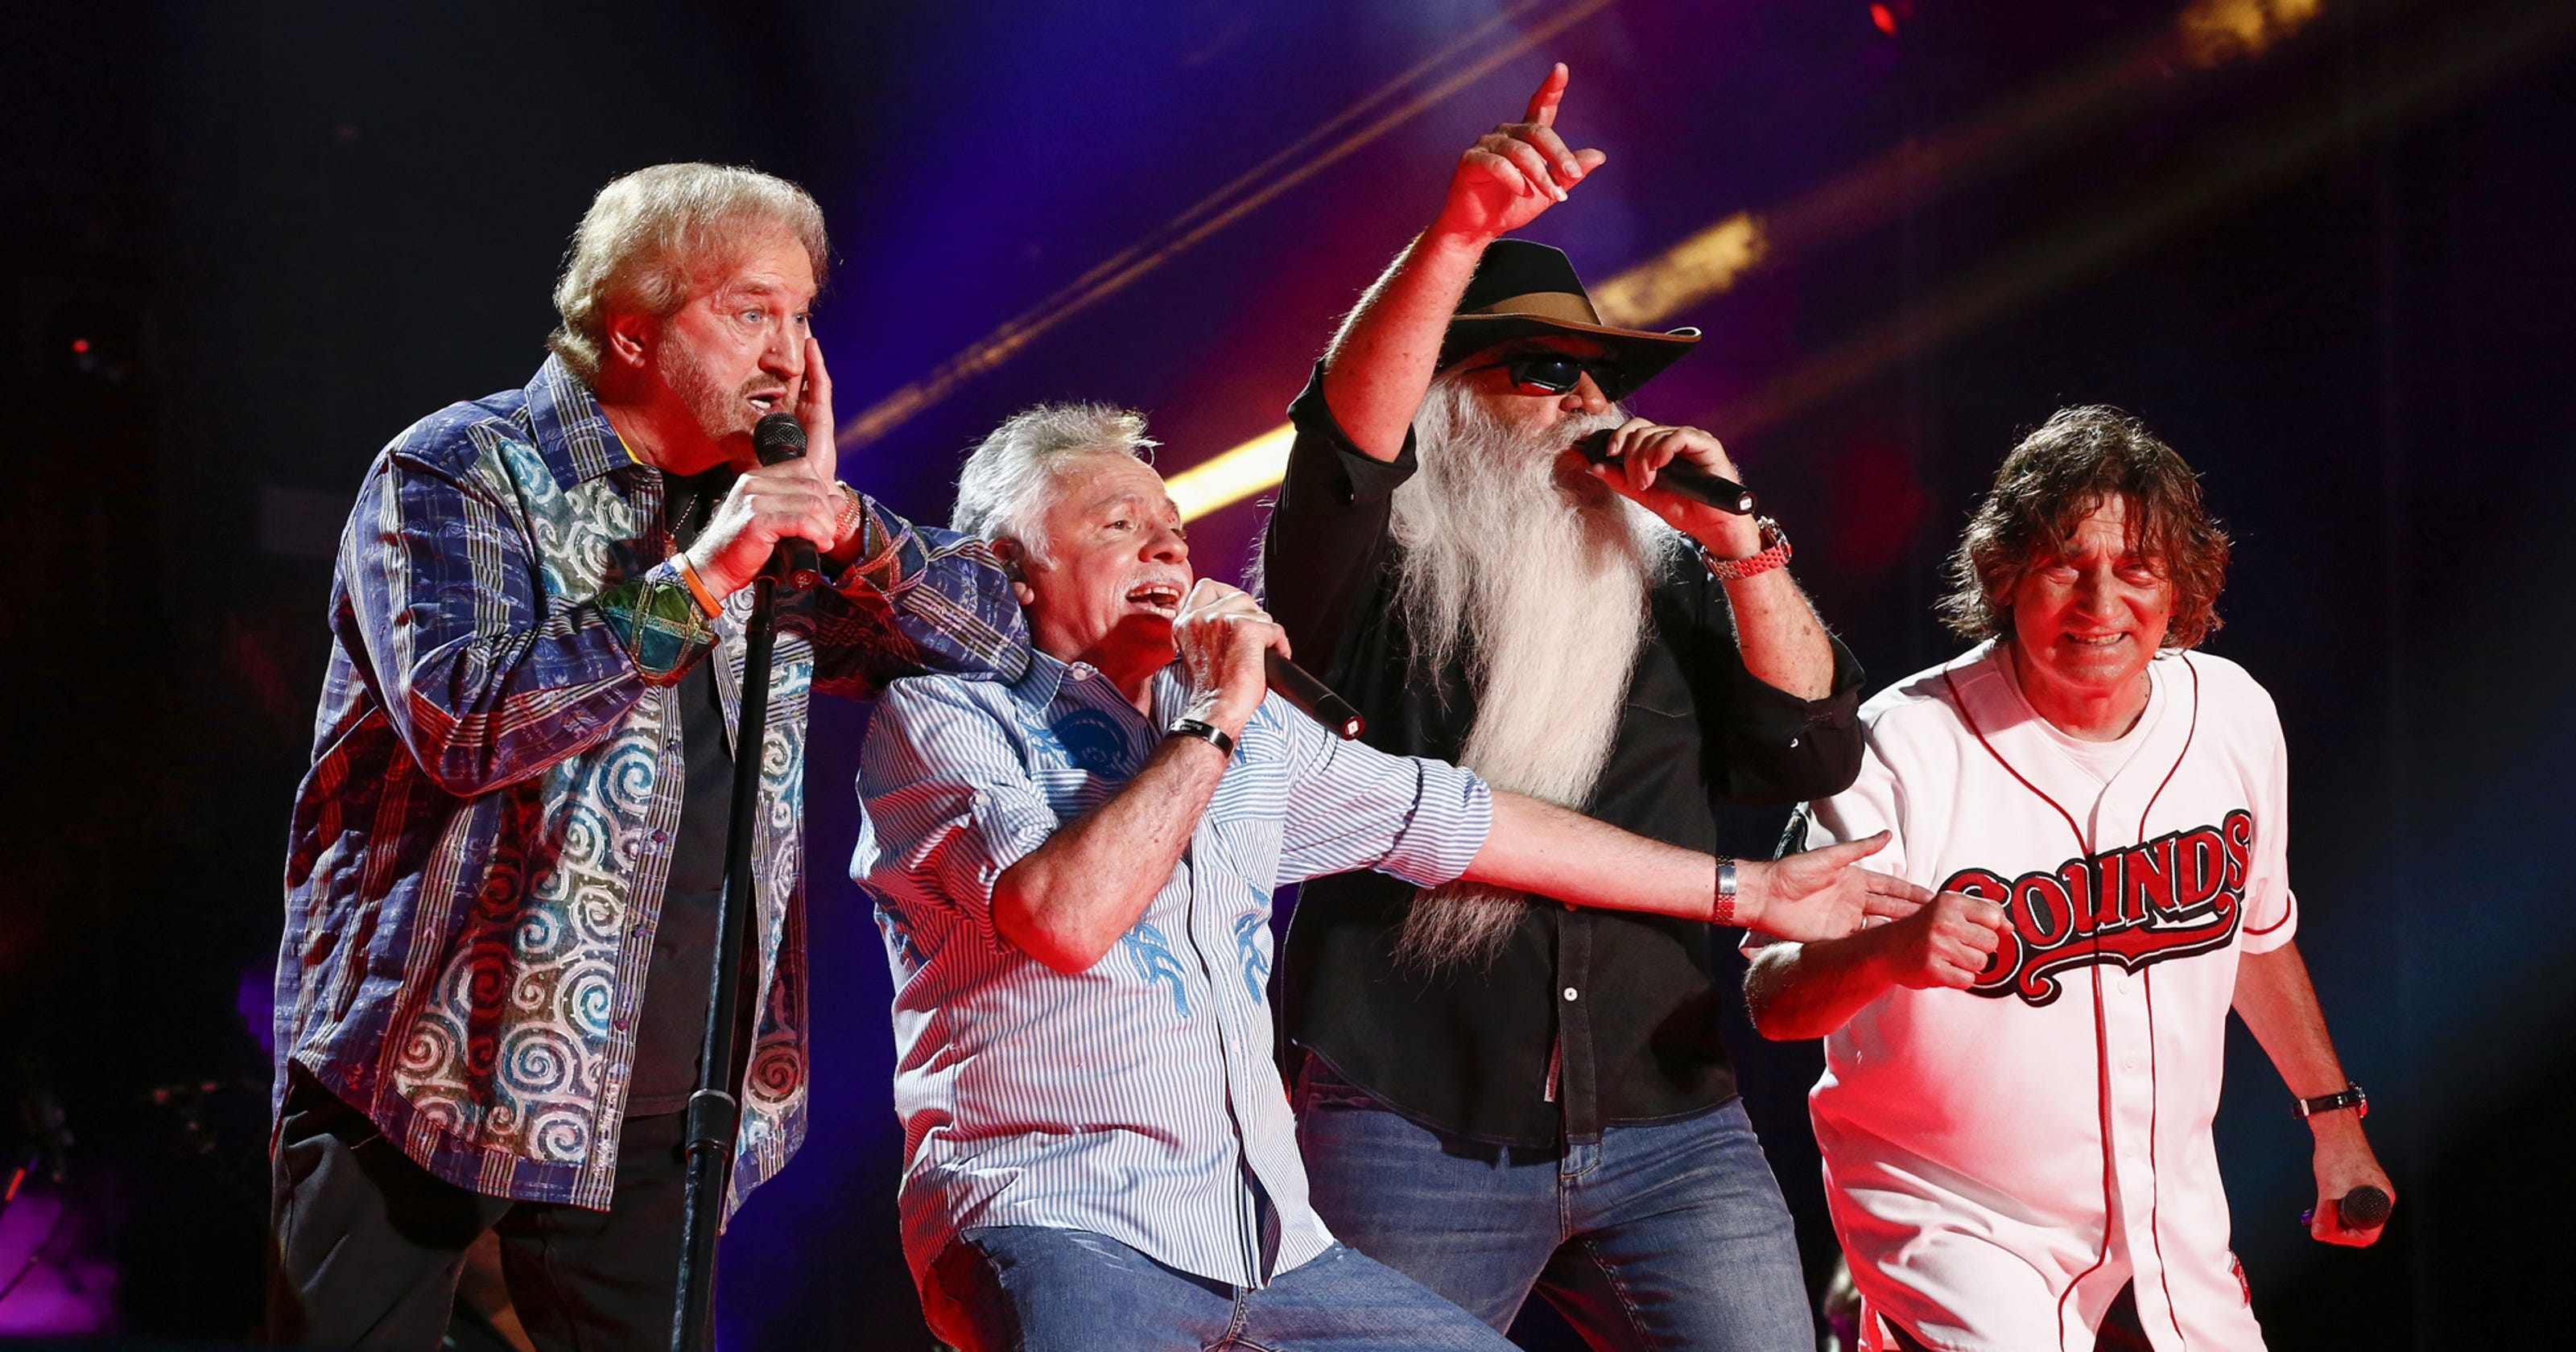 Bass singer Richard Sterban dishes about Oak Ridge Boys new album, tour